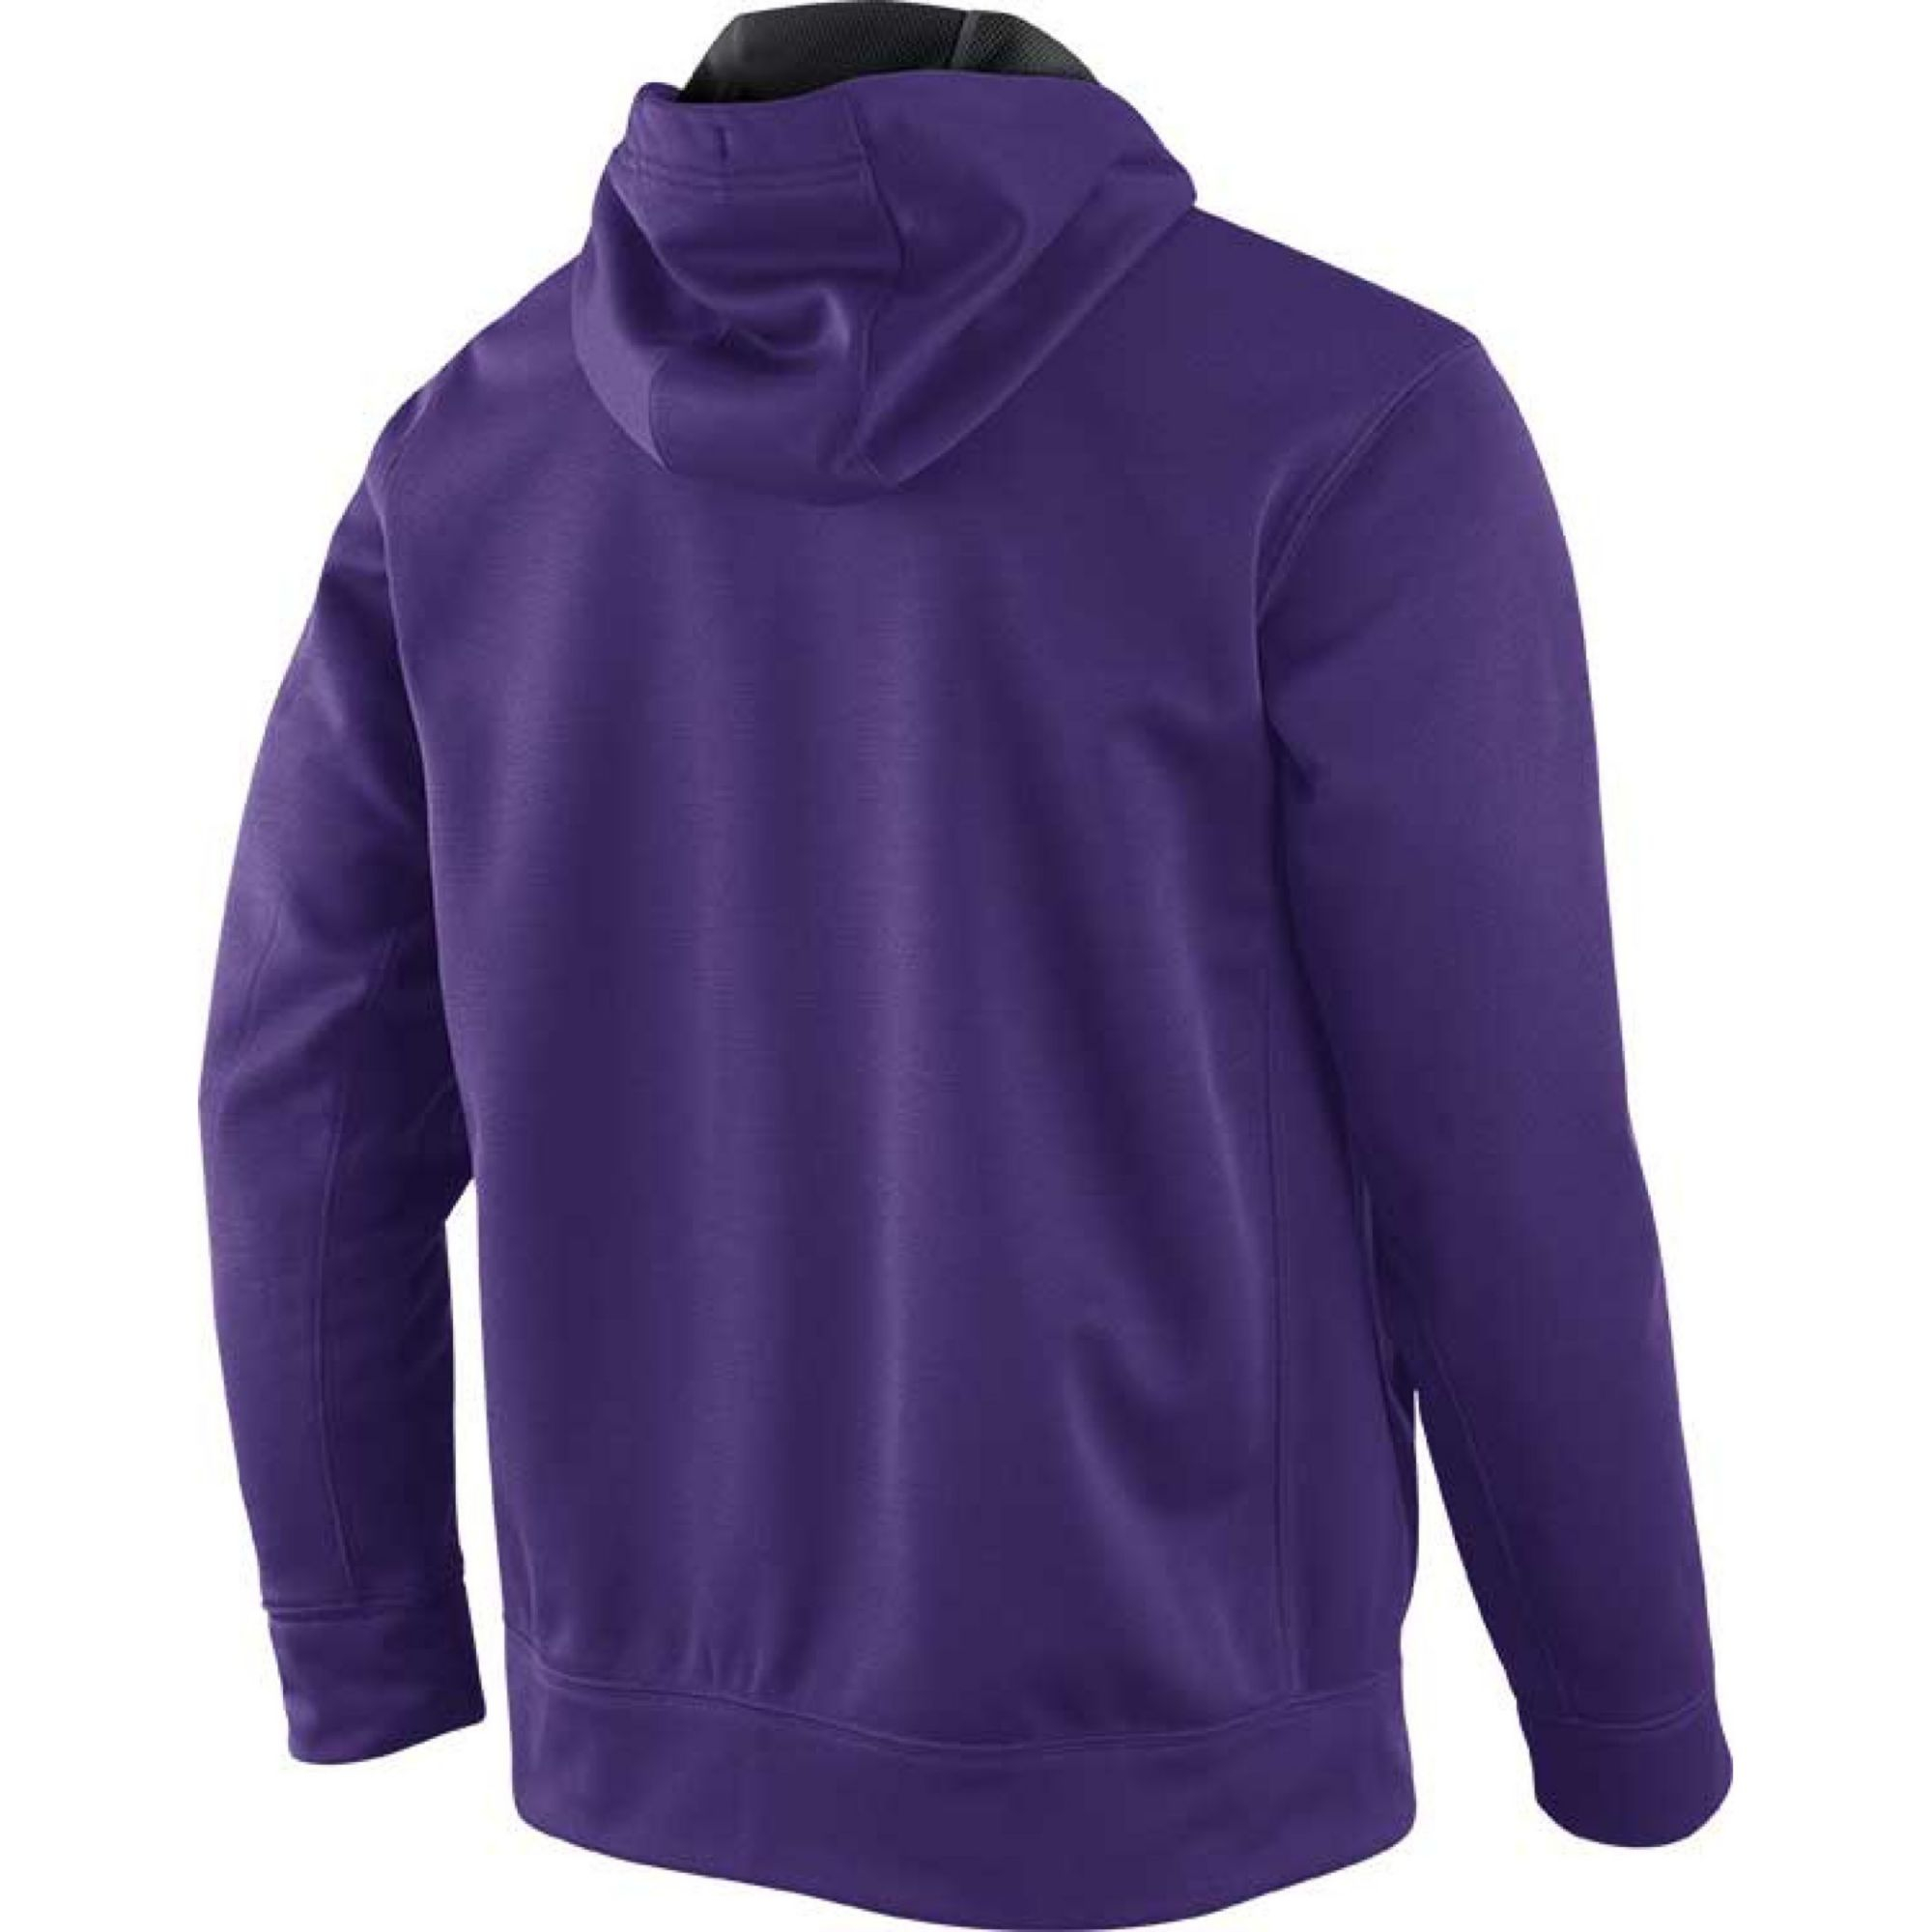 d457e6c6c058 Mens Purple Nike Sweatshirt - BCD Tofu House